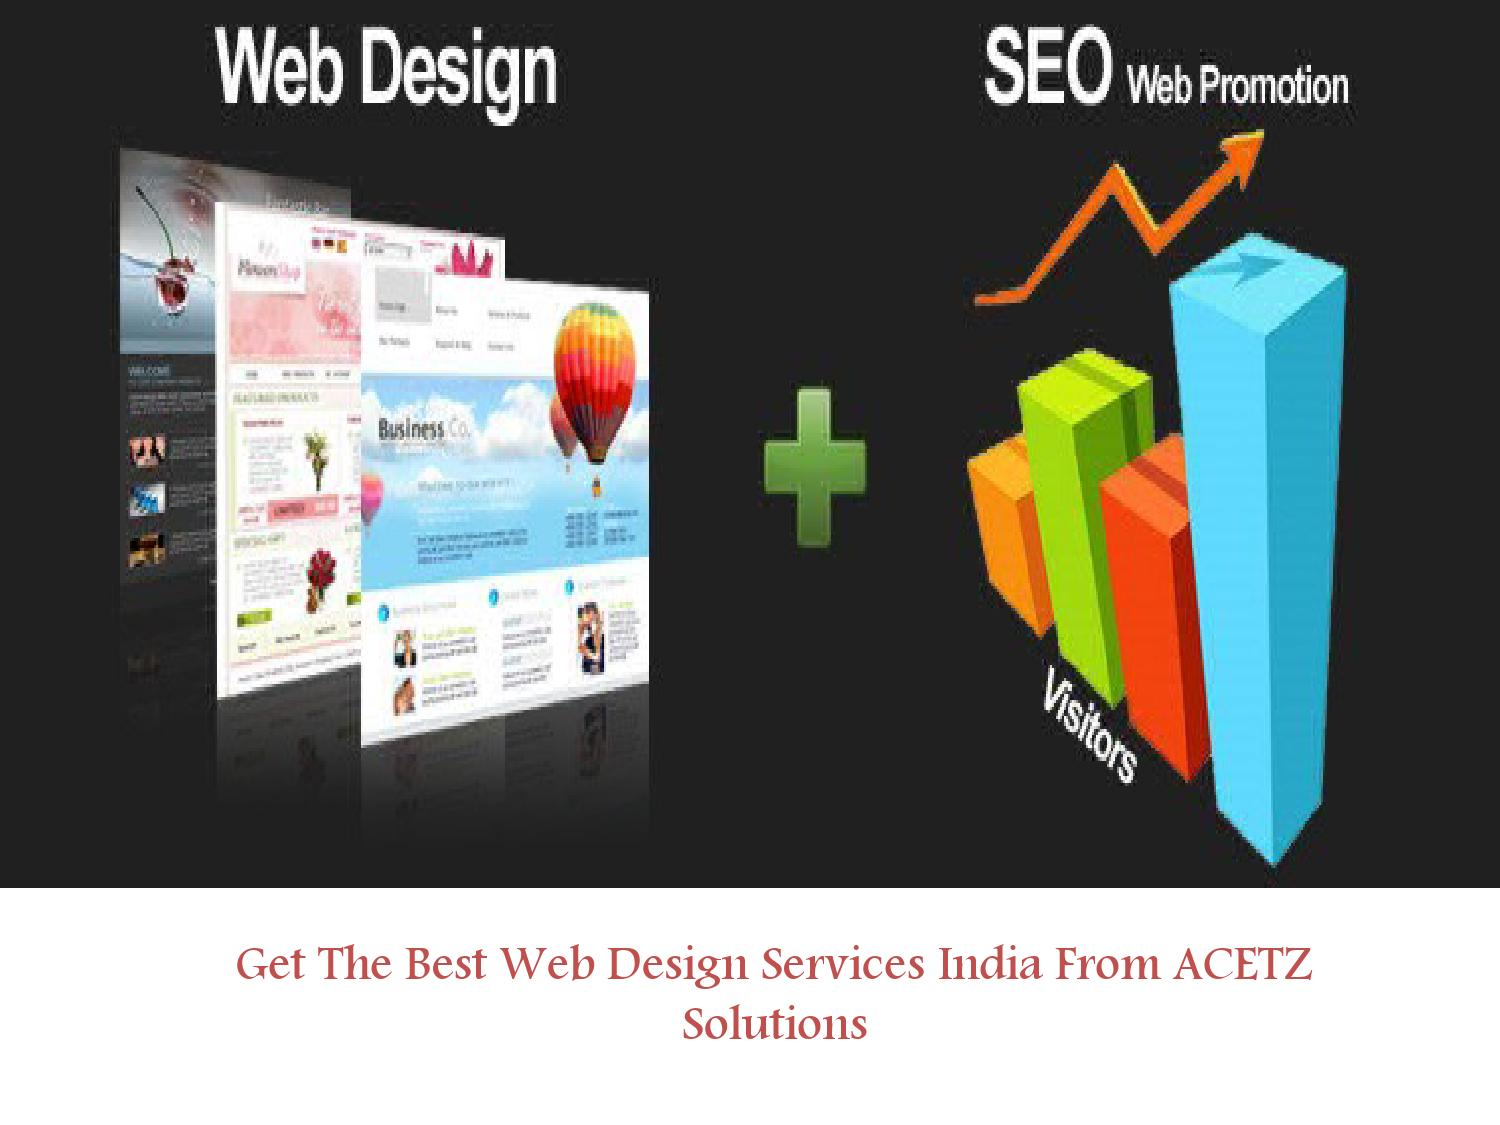 The Best Design Solutions: Get The Best Web Design Services India From ACETZ